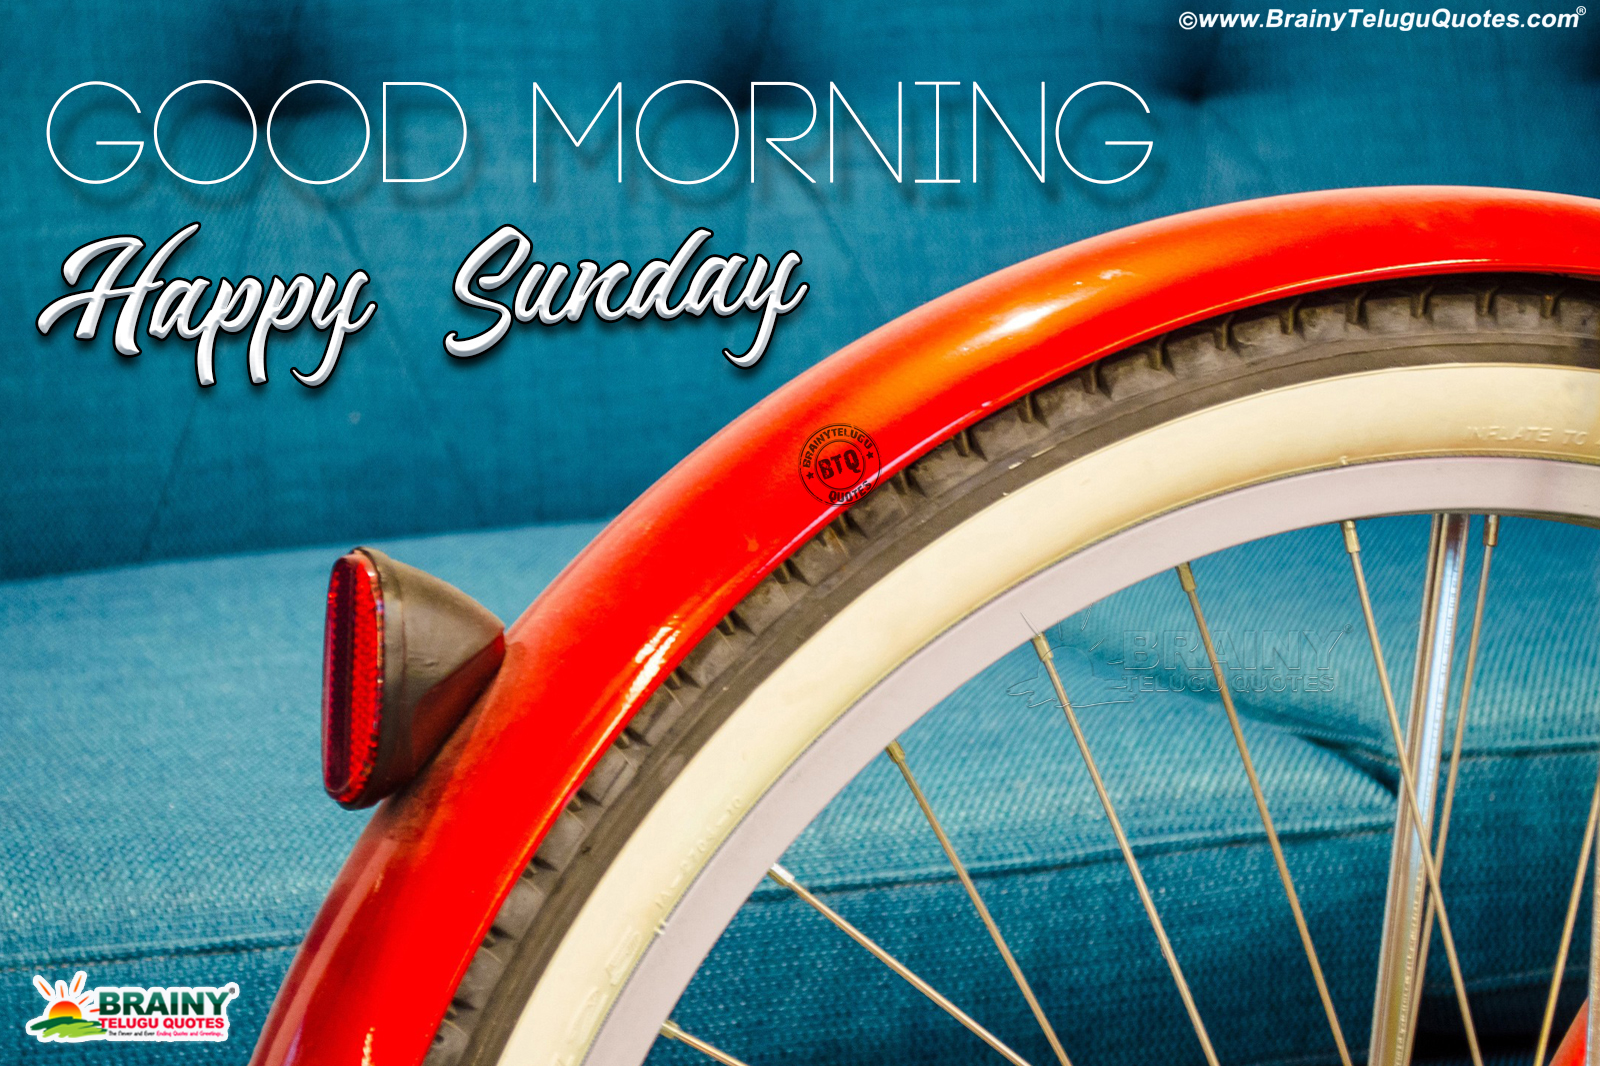 Good Morning Happy Sunday Free Download : Good morning happy sunday quotes messages greetings in